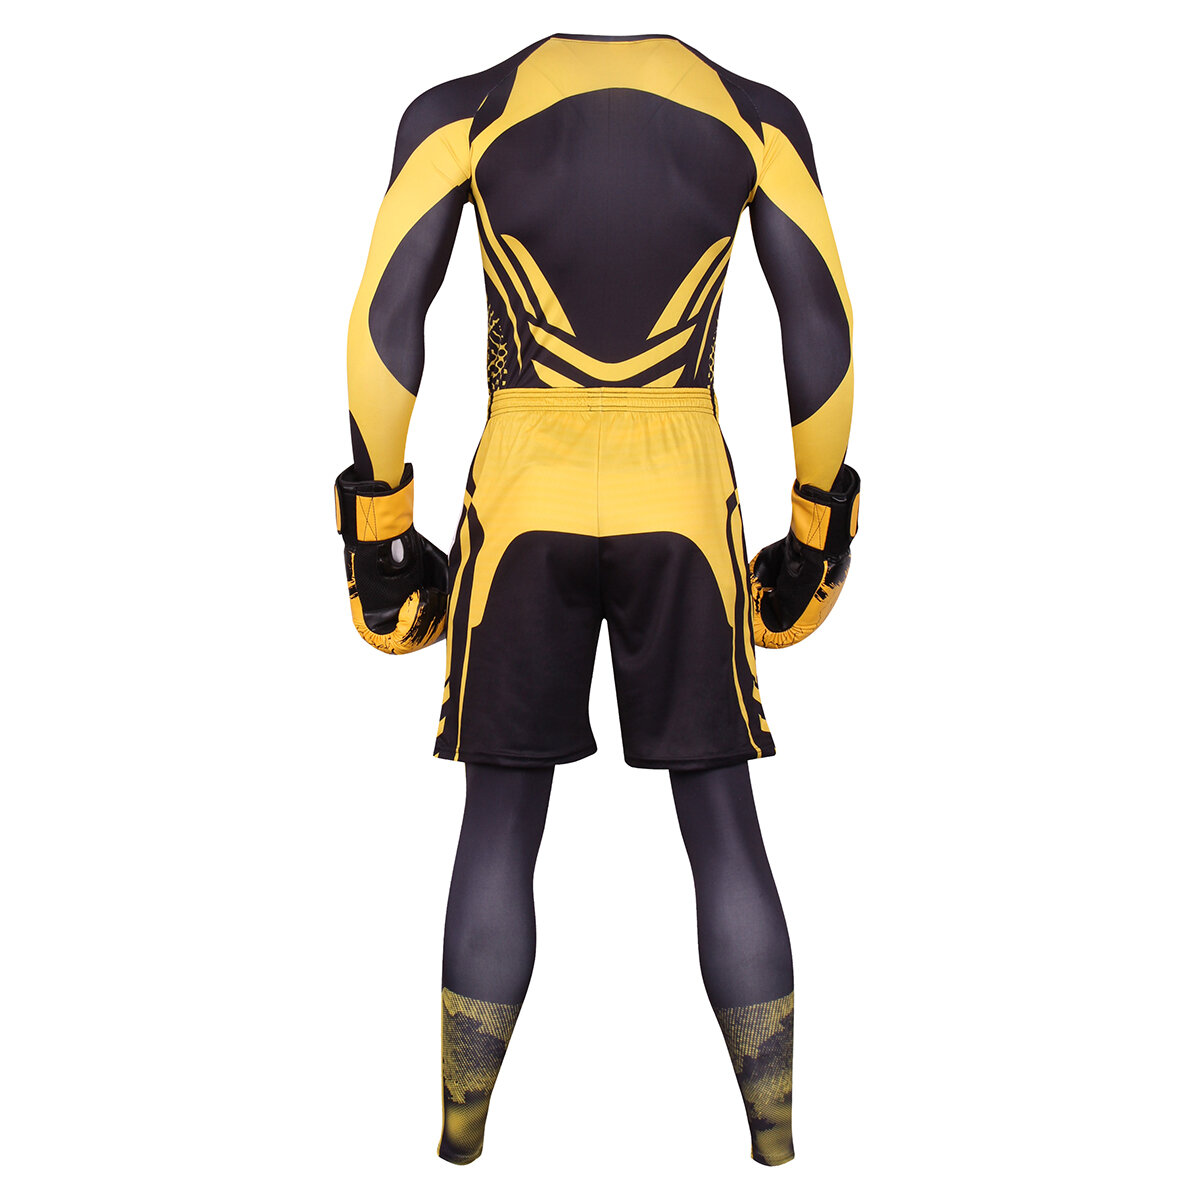 3 in 1 exercise suit for mens yellow